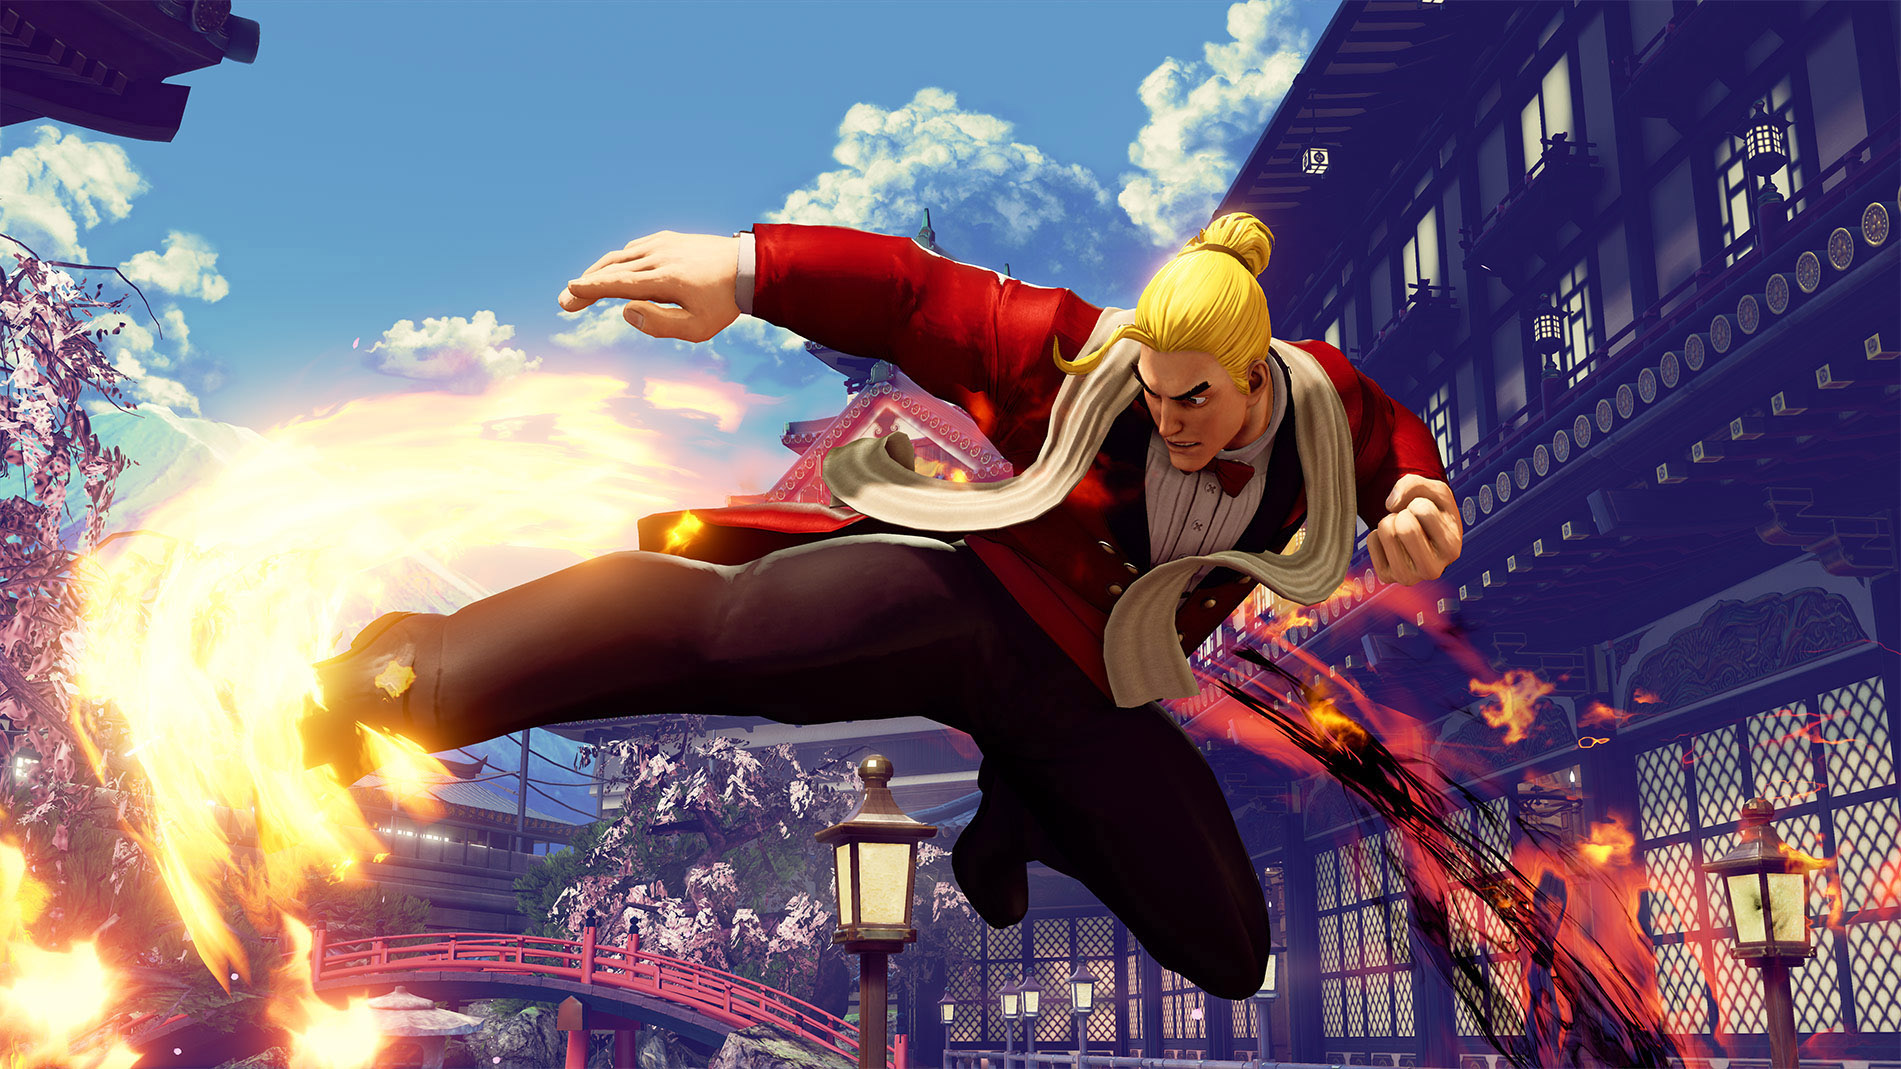 CPT Costumes 5 out of 17 image gallery